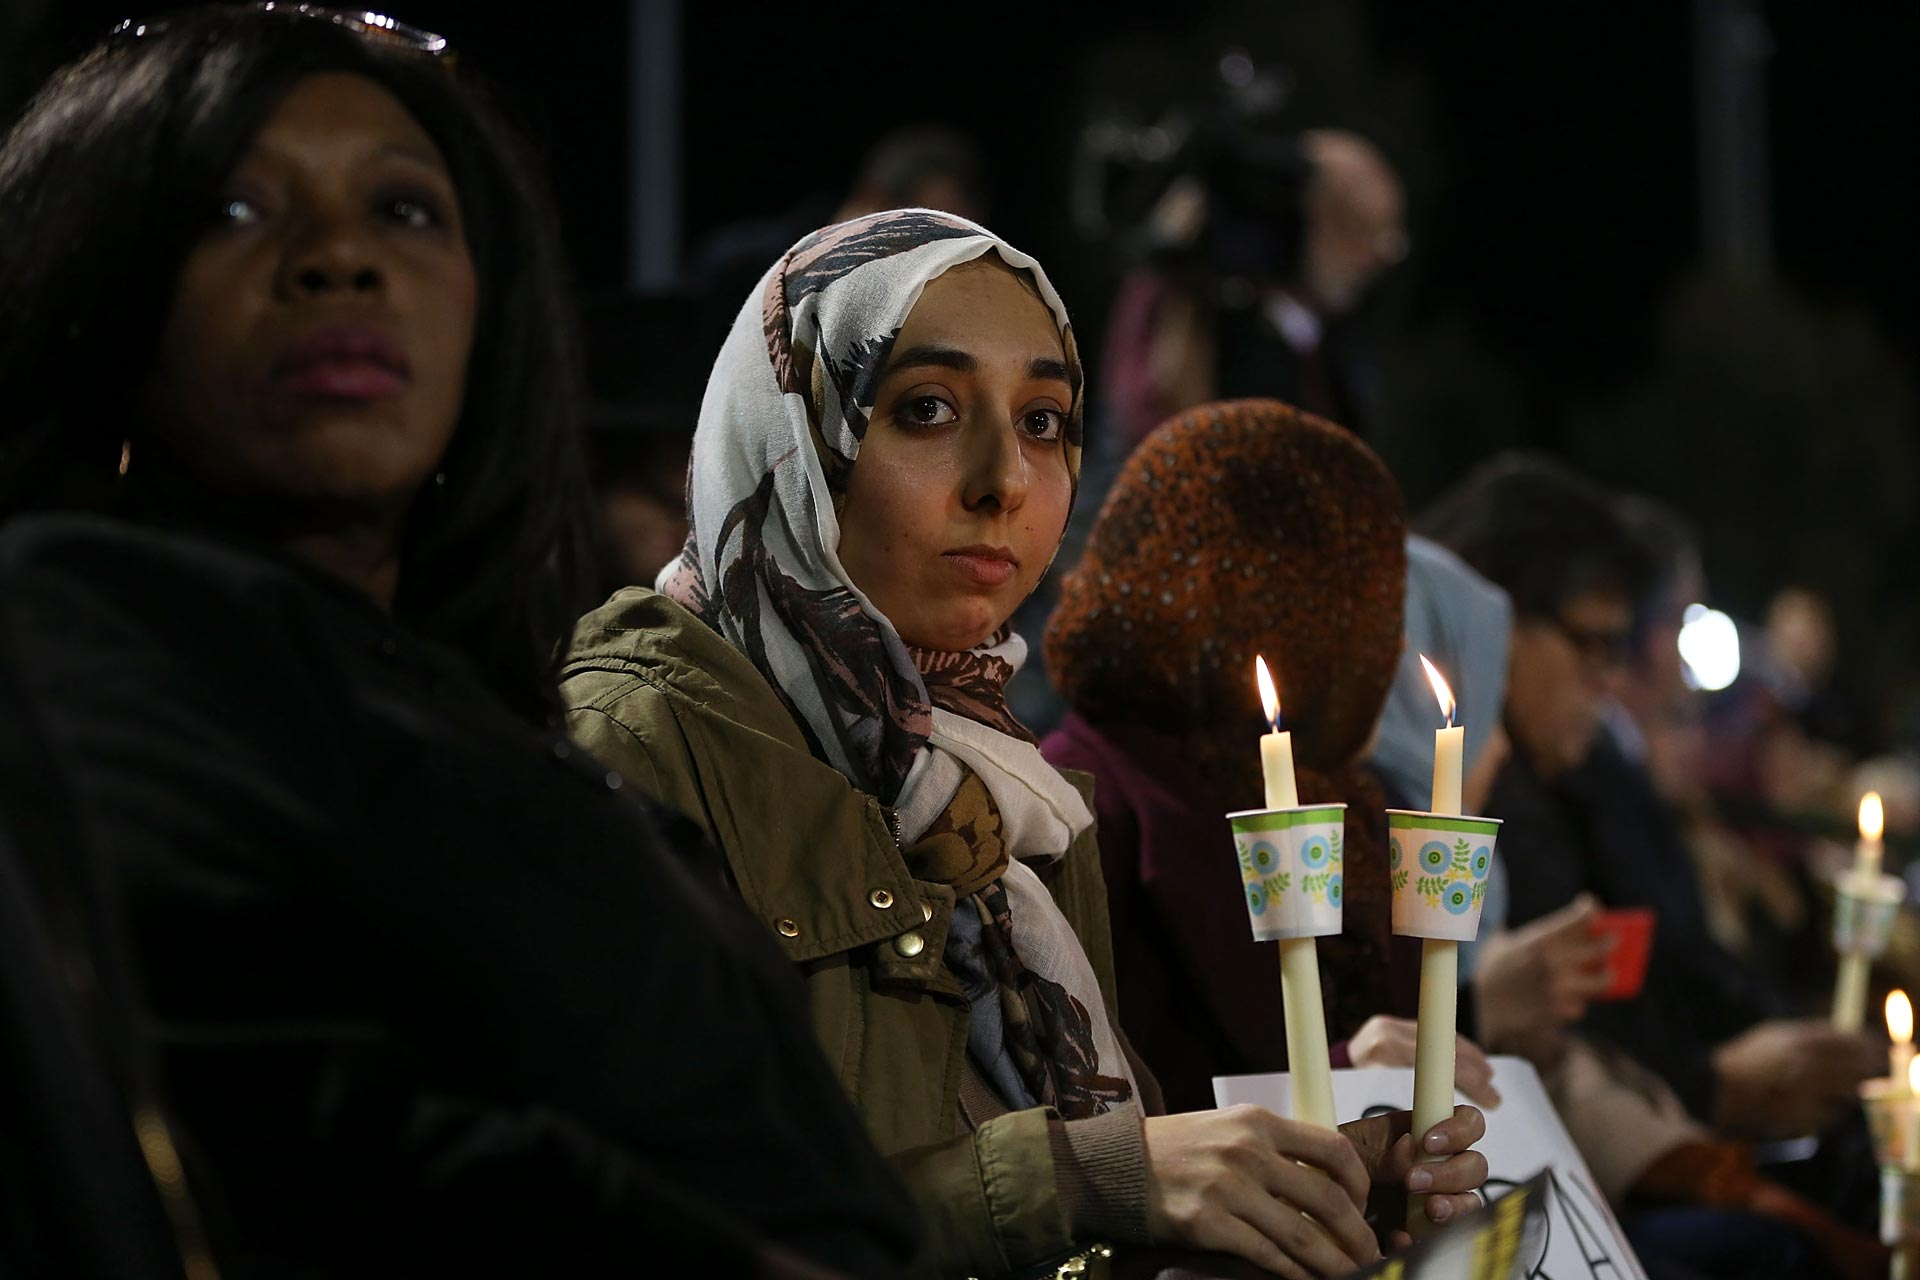 Hundreds of people filled San Manuel stadium in San Bernardino last Thursday for the first in a series of memorials and vigils in honor of those wounded and killed in last week's mass shooting.